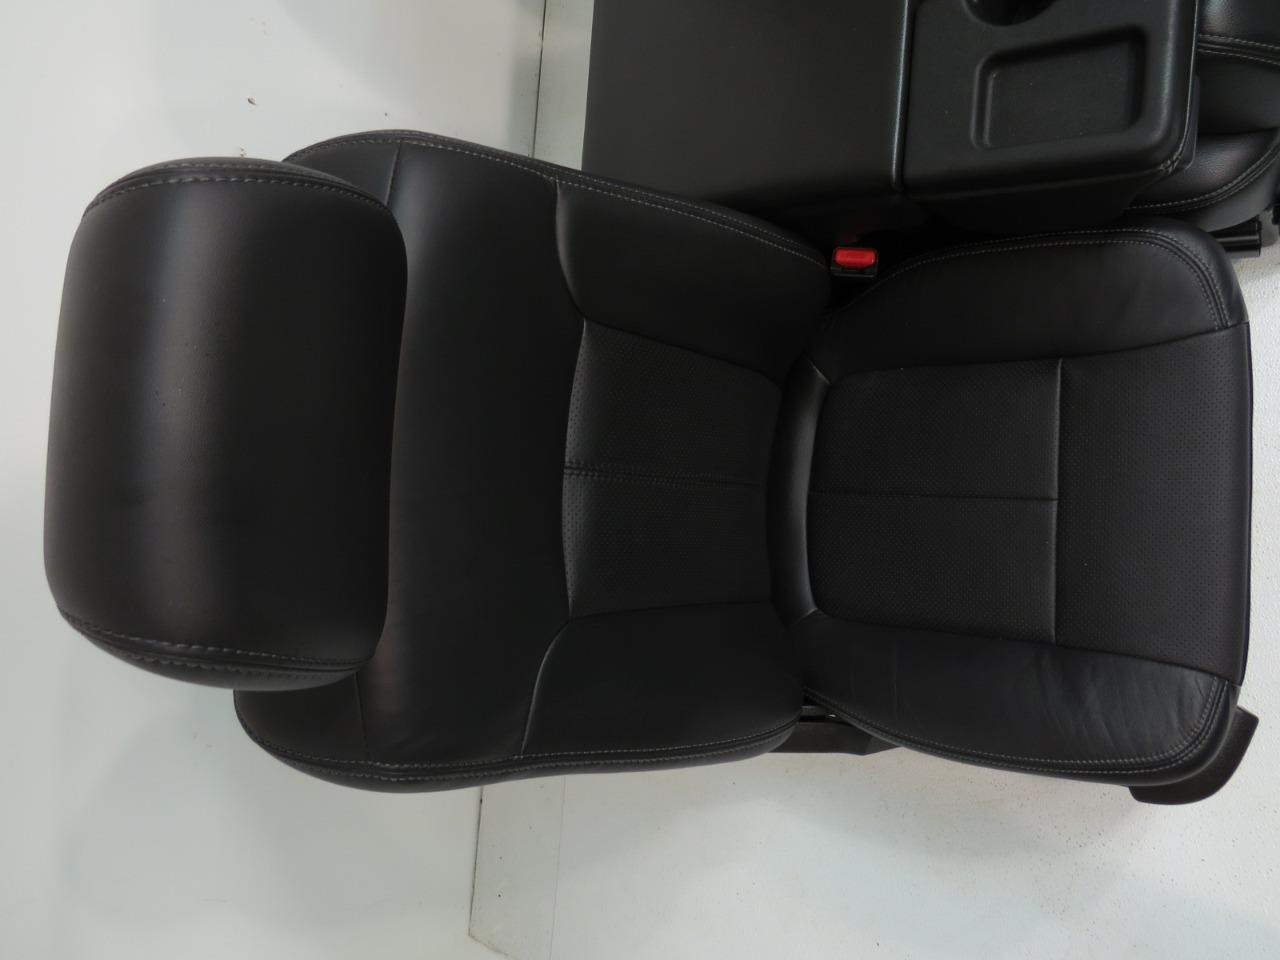 Chevy Silverado Replacement Seats >> Replacement Ford F150 F-150 Black Leather Front Seats, Rear Seat, and Jump Seat Leather Seats ...